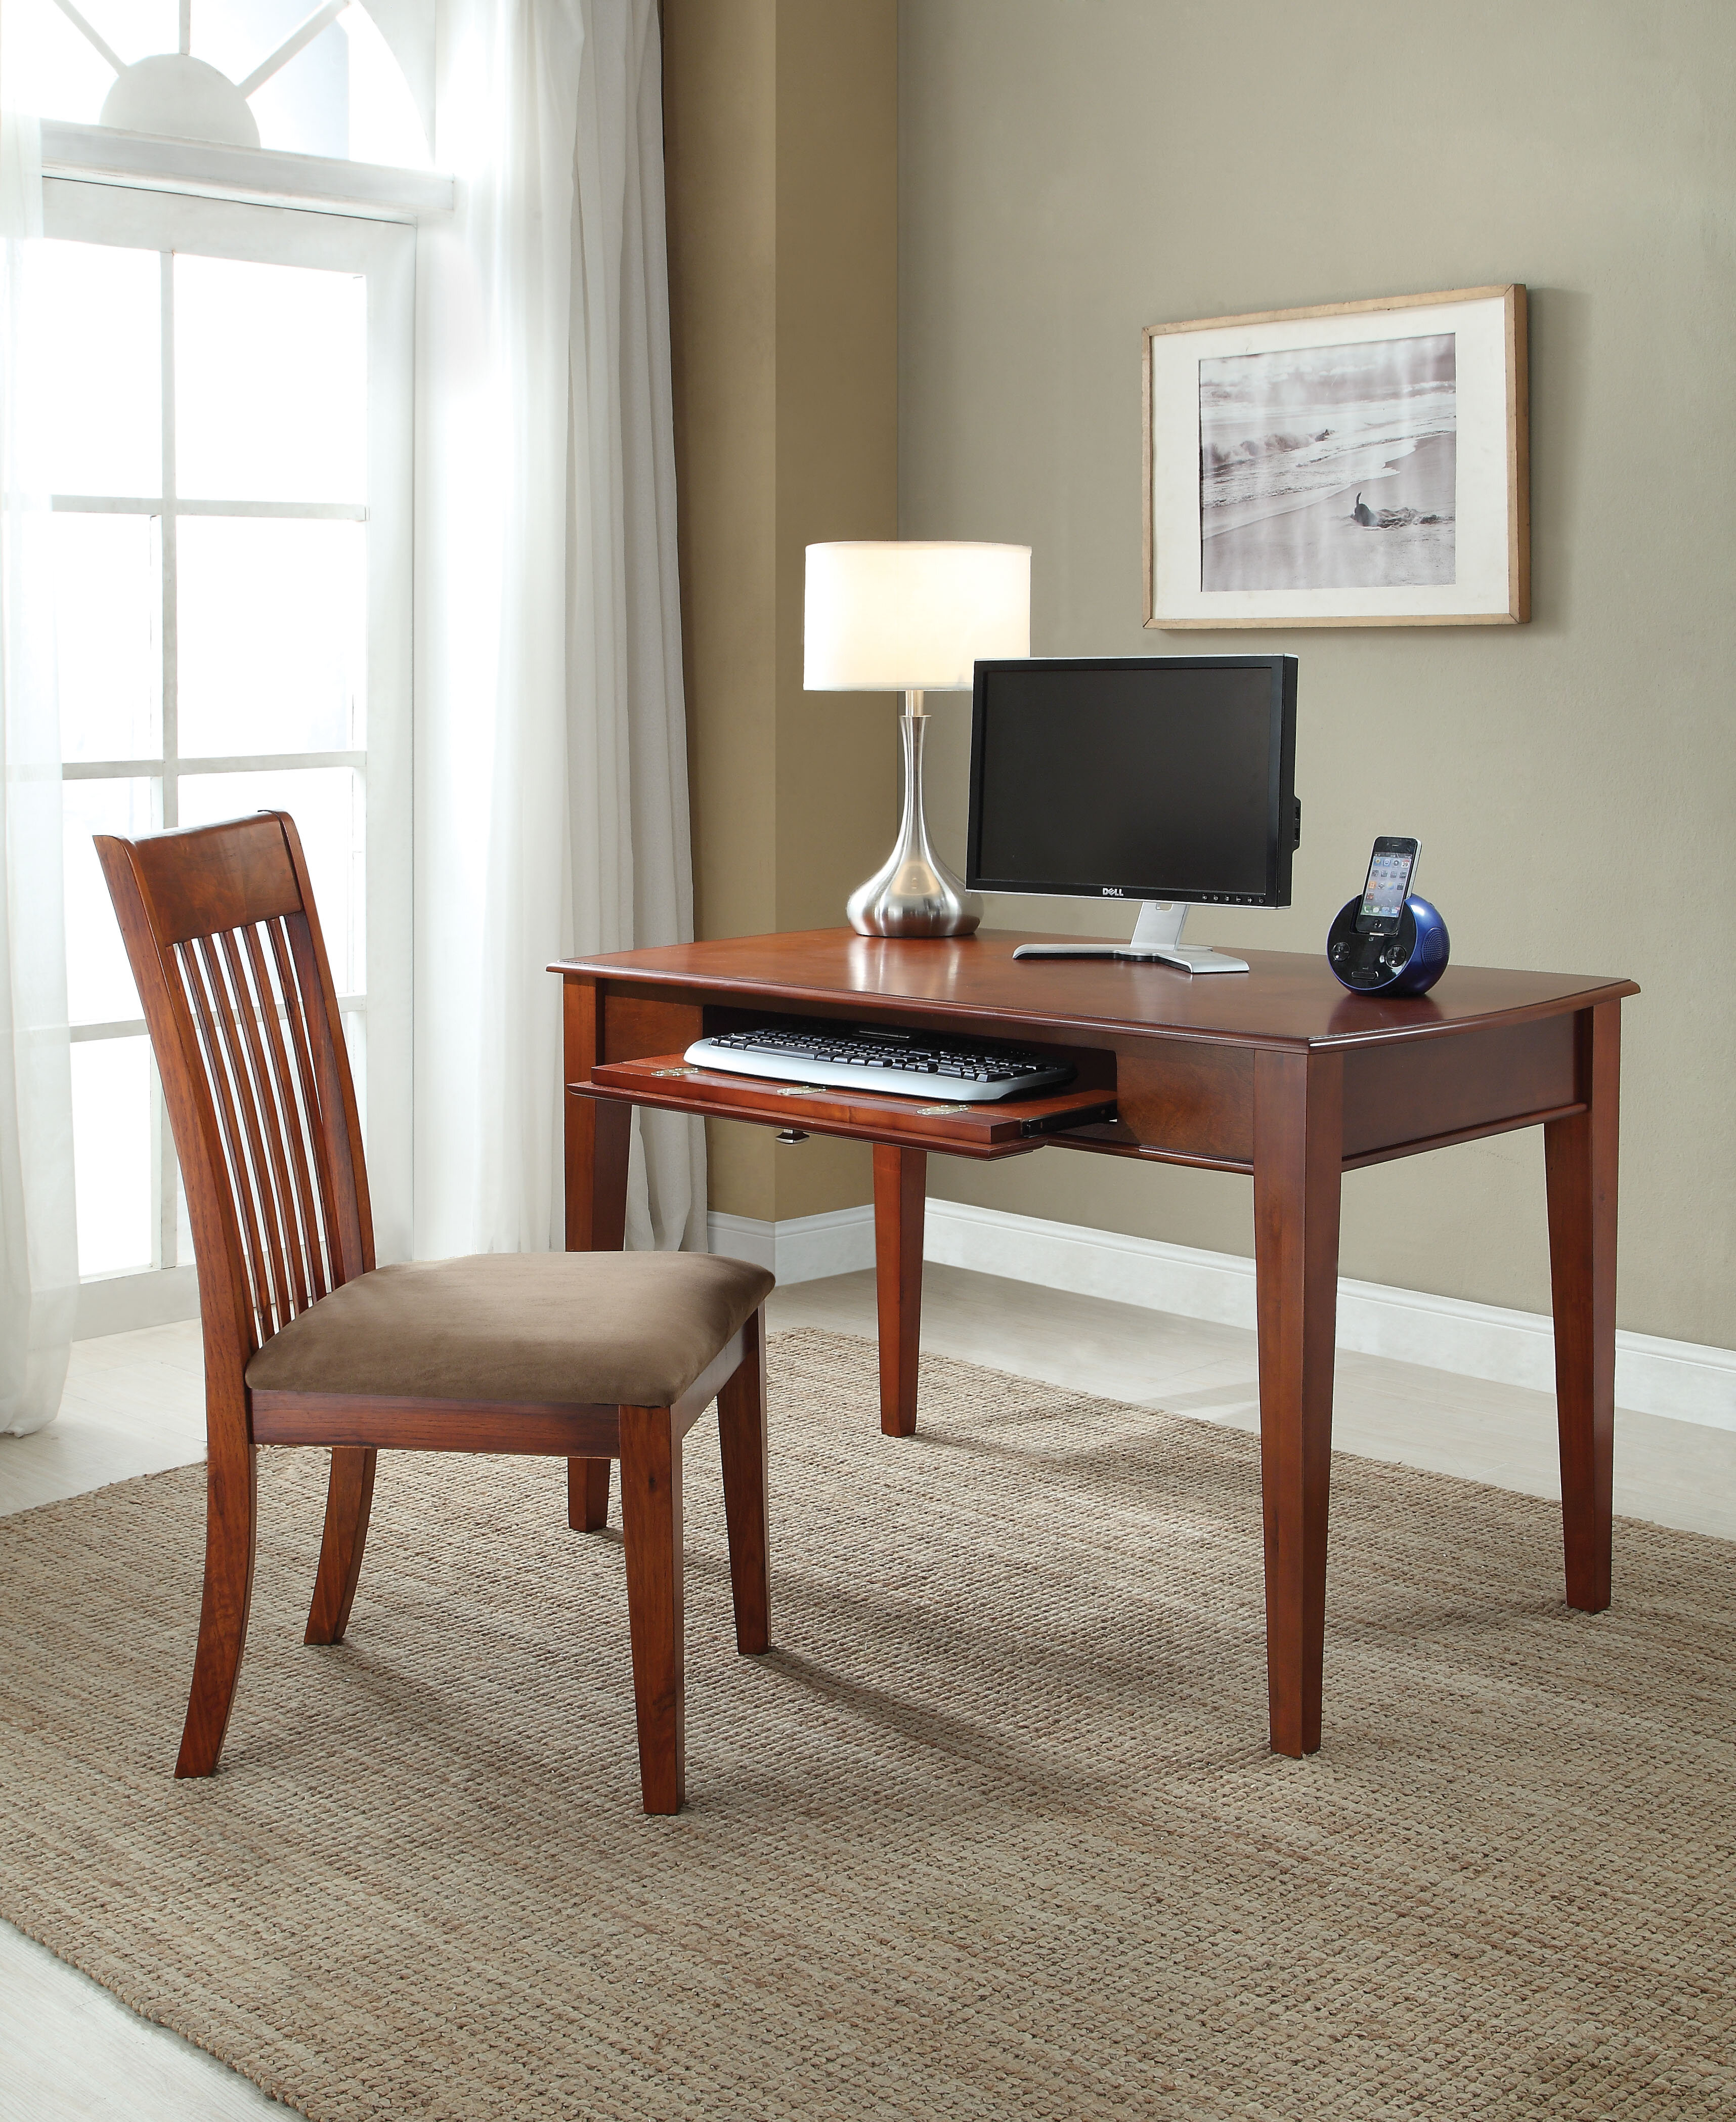 Alcott Hill Office Furniture Sets You Ll Love In 2021 Wayfair